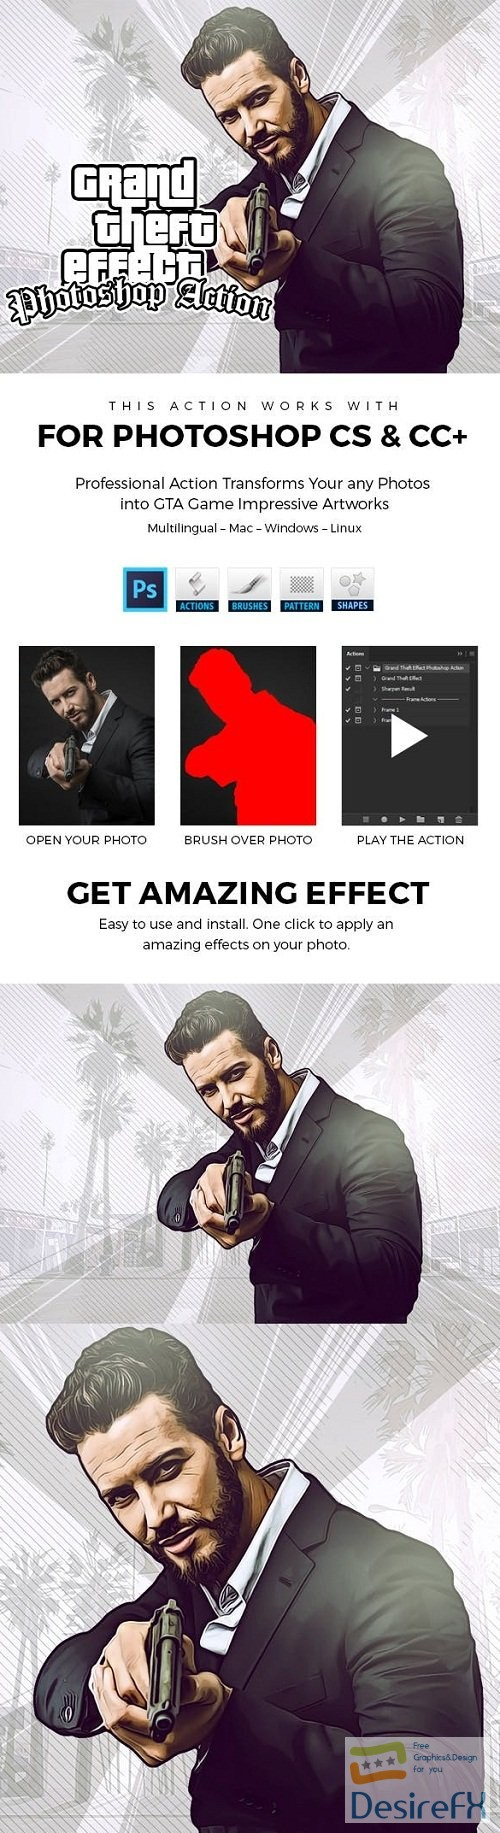 actions-atn - Grand Theft Effect Photoshop Action 23753323